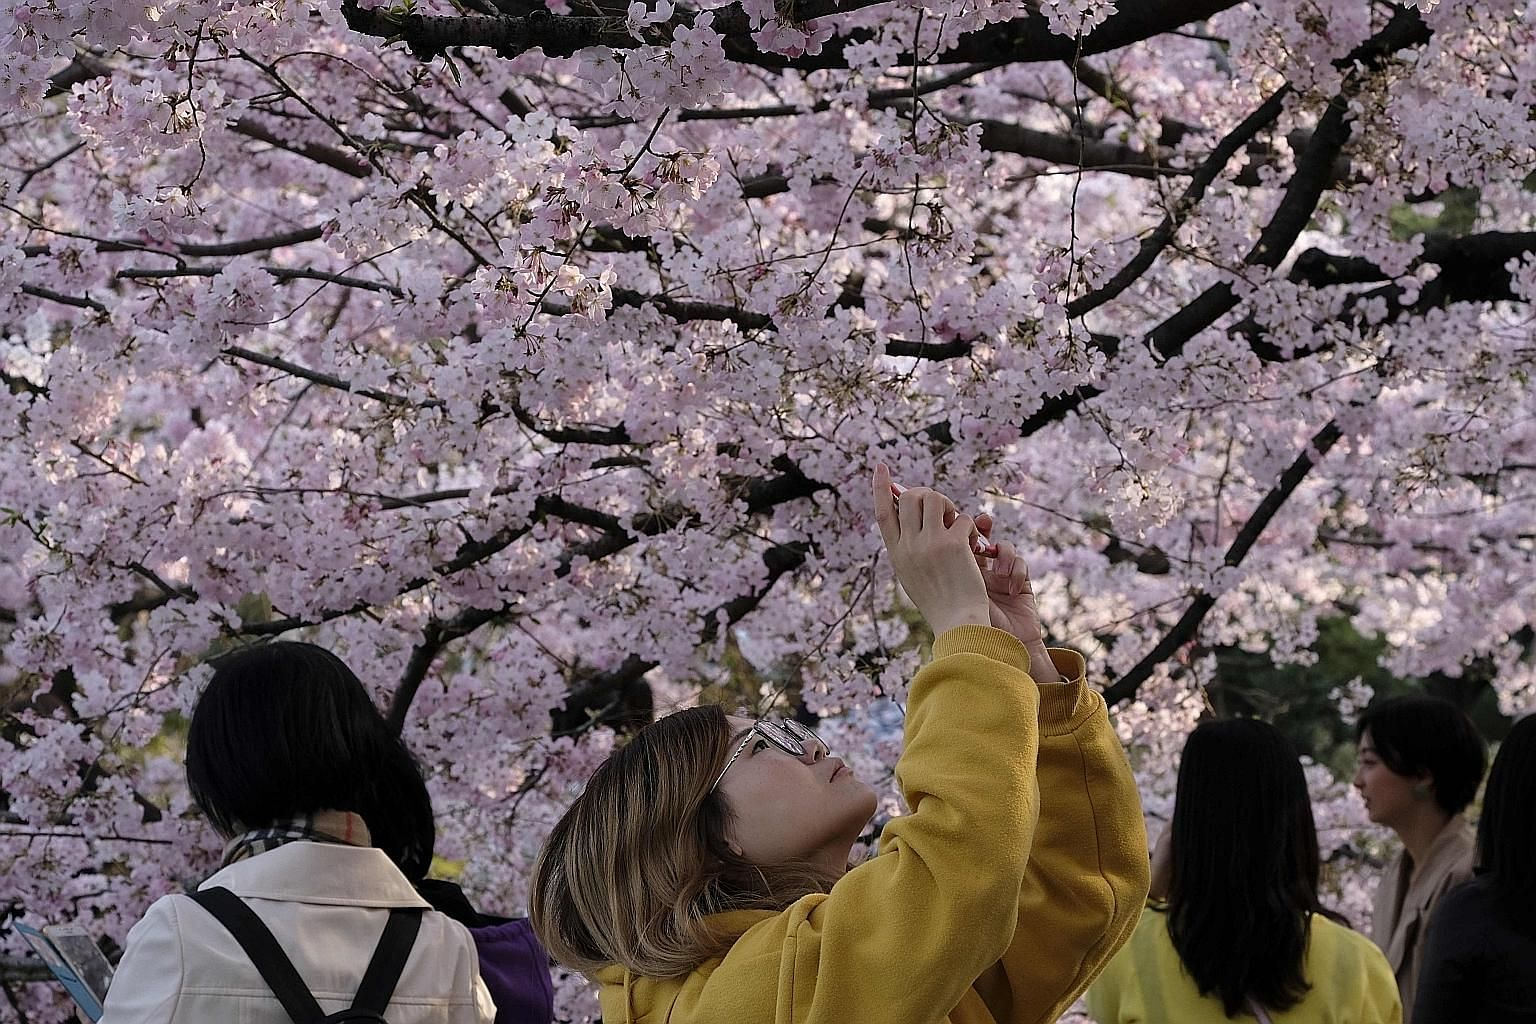 The traditional cherry blossom festivals in Tokyo and Osaka, planned for April, will be called off over coronavirus fears. Google is among the organisations cancelling major events because of the evolving situation caused by the virus outbreak.